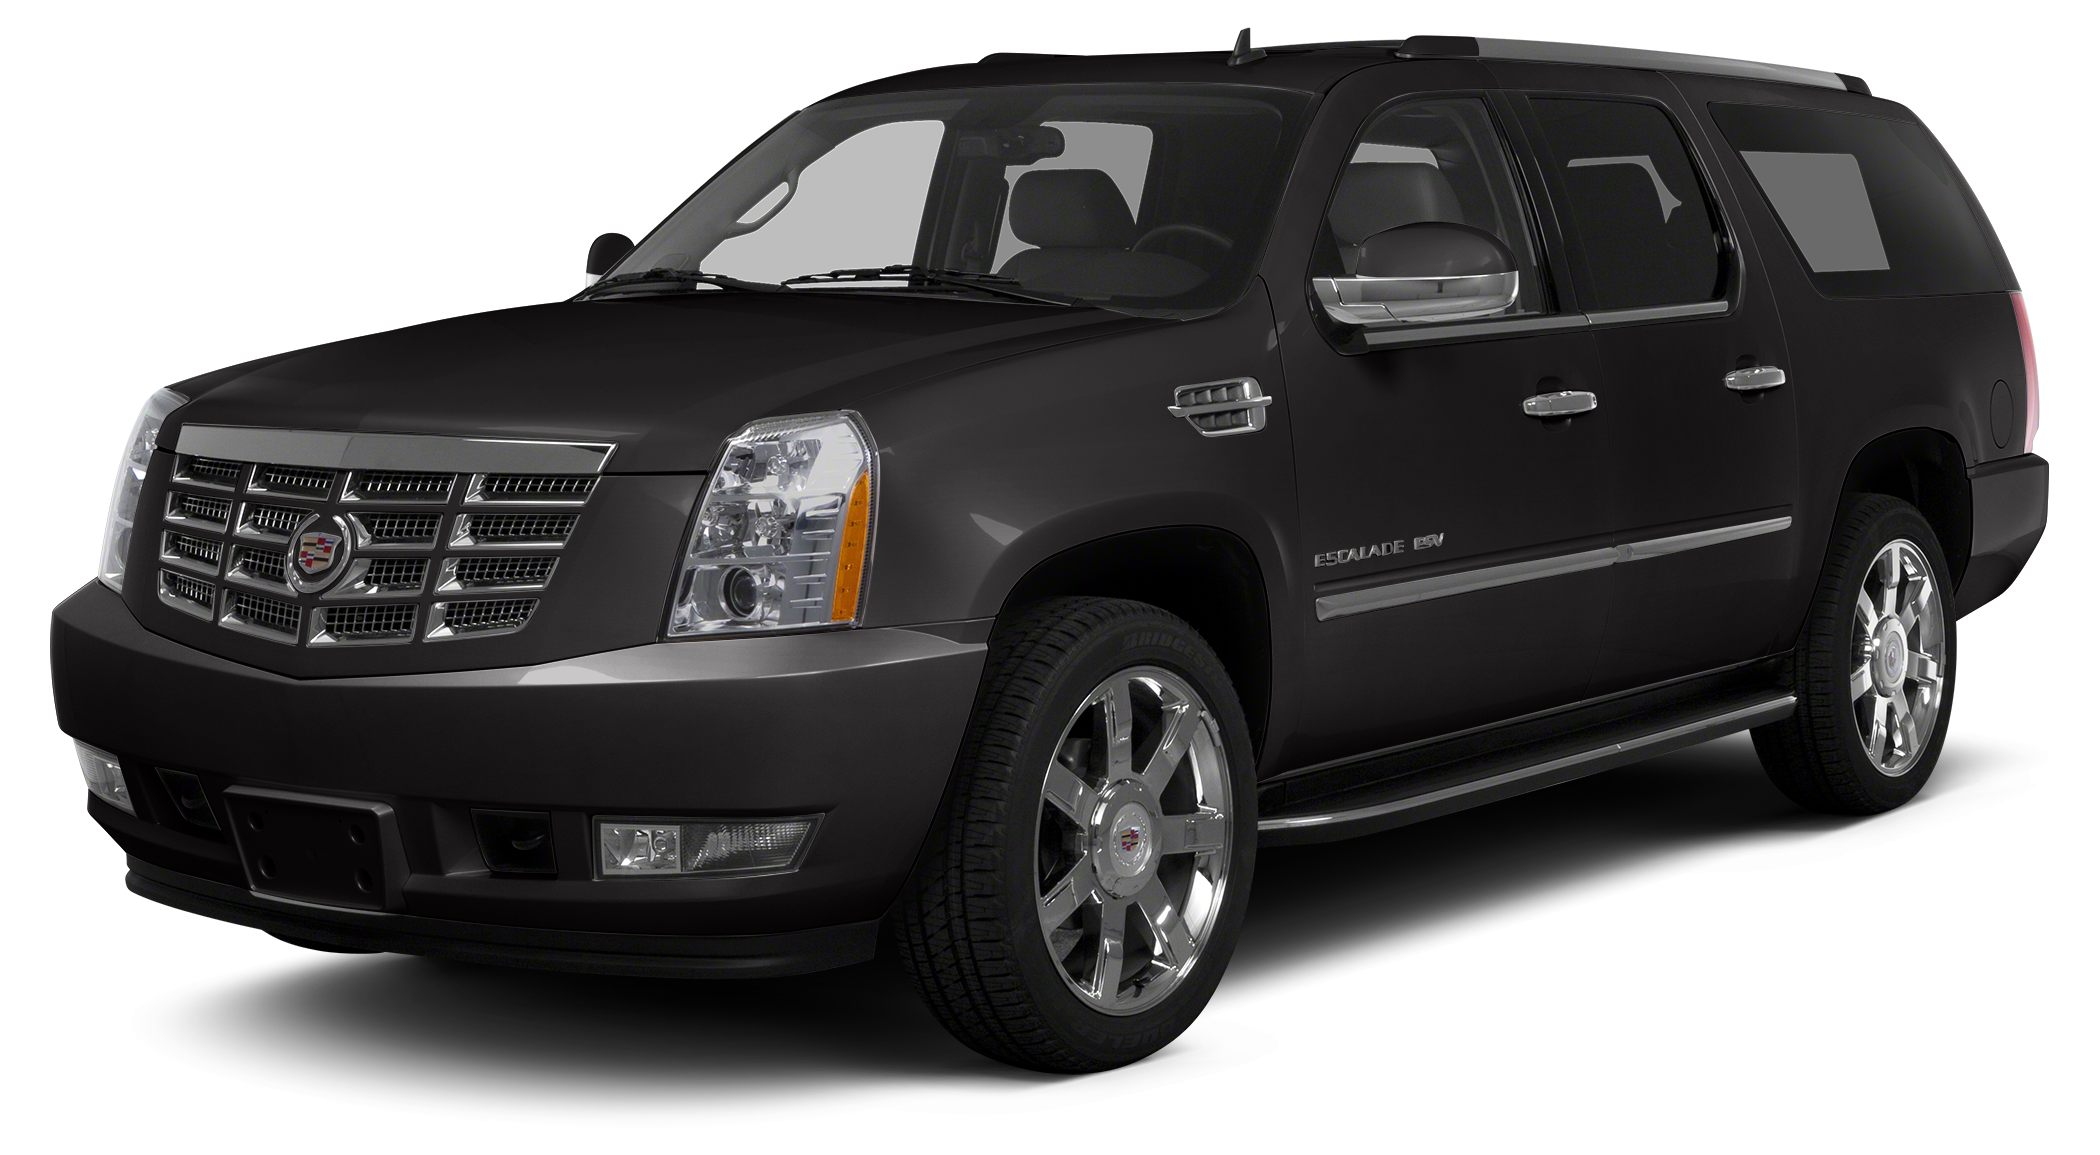 2013 Cadillac Escalade ESV Platinum Moonroof Navigation Third Row Seat Heated Leather Seats DV